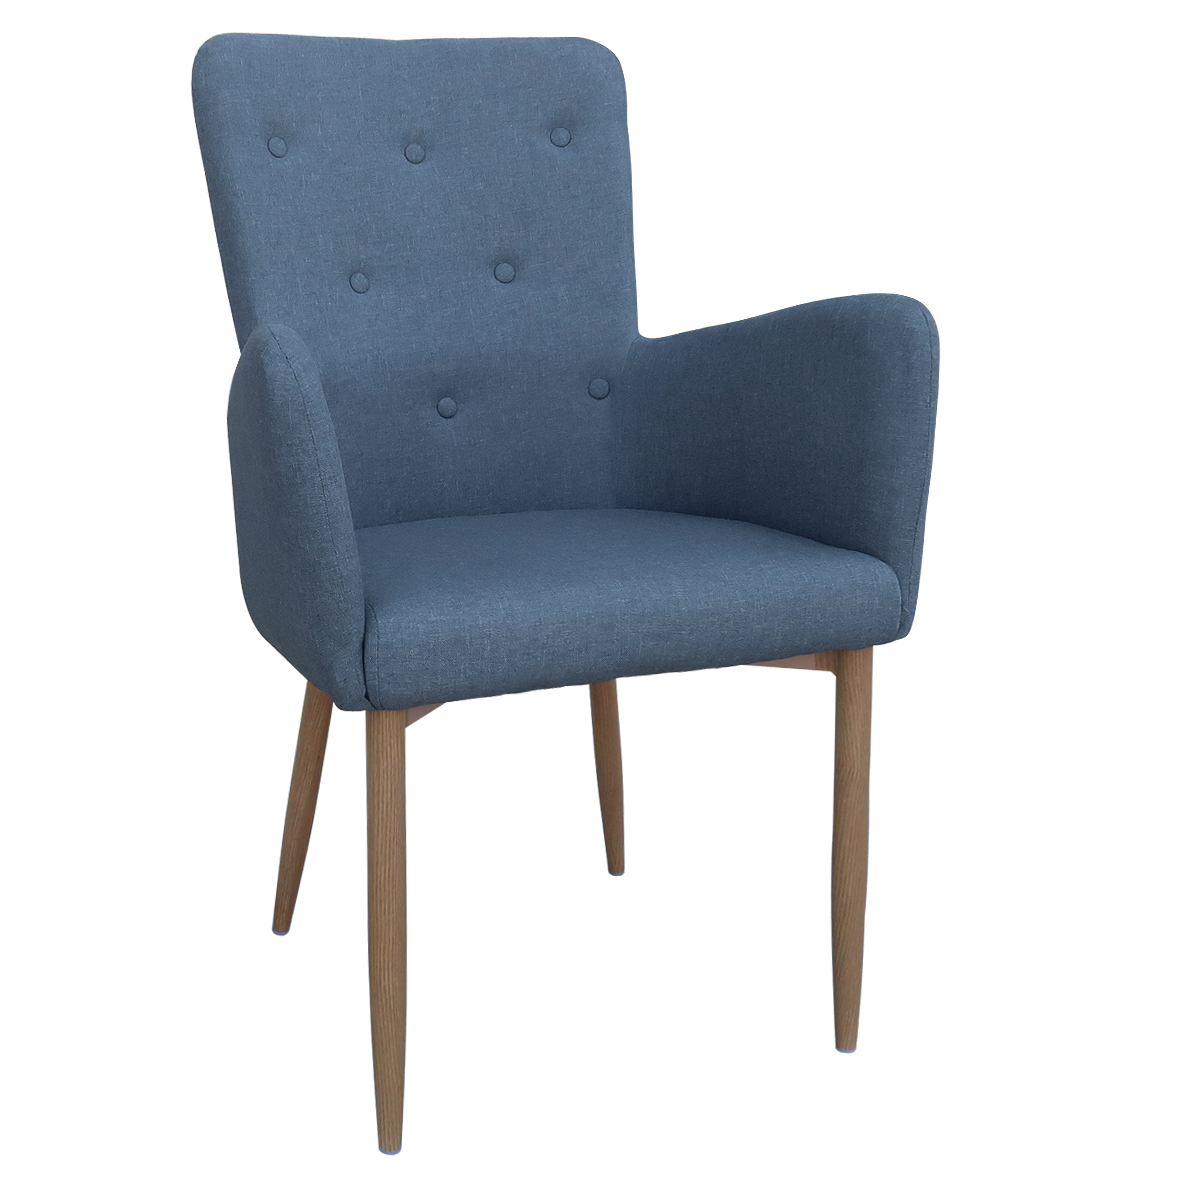 Barton Chair Barton Arm Chair Shadow Blue